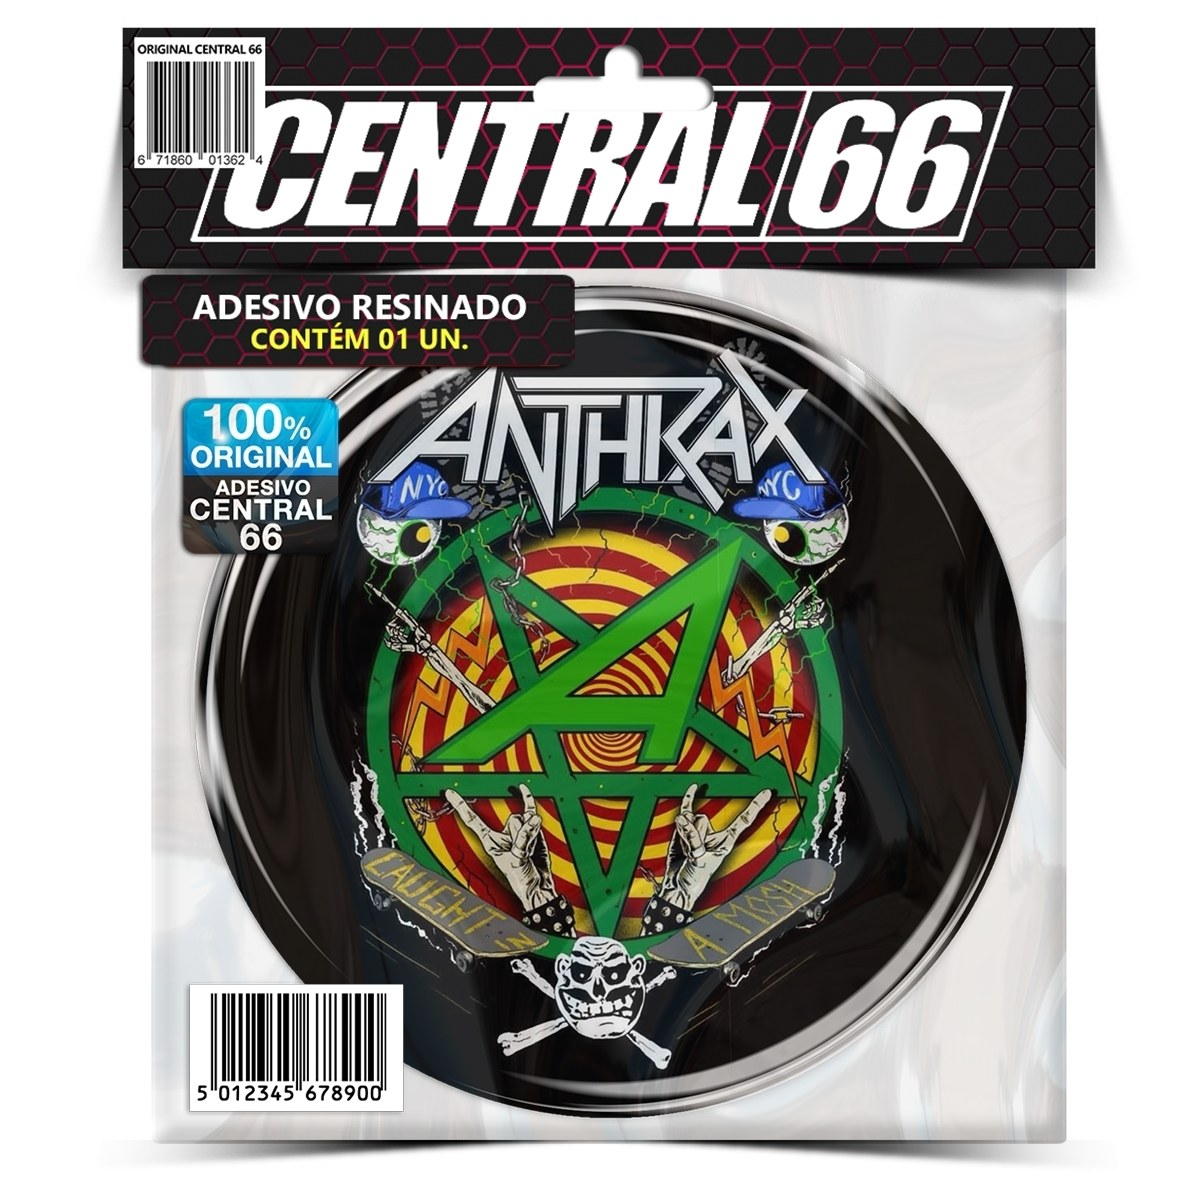 Adesivo Redondo Anthrax Caught in A Mosh – Central 66